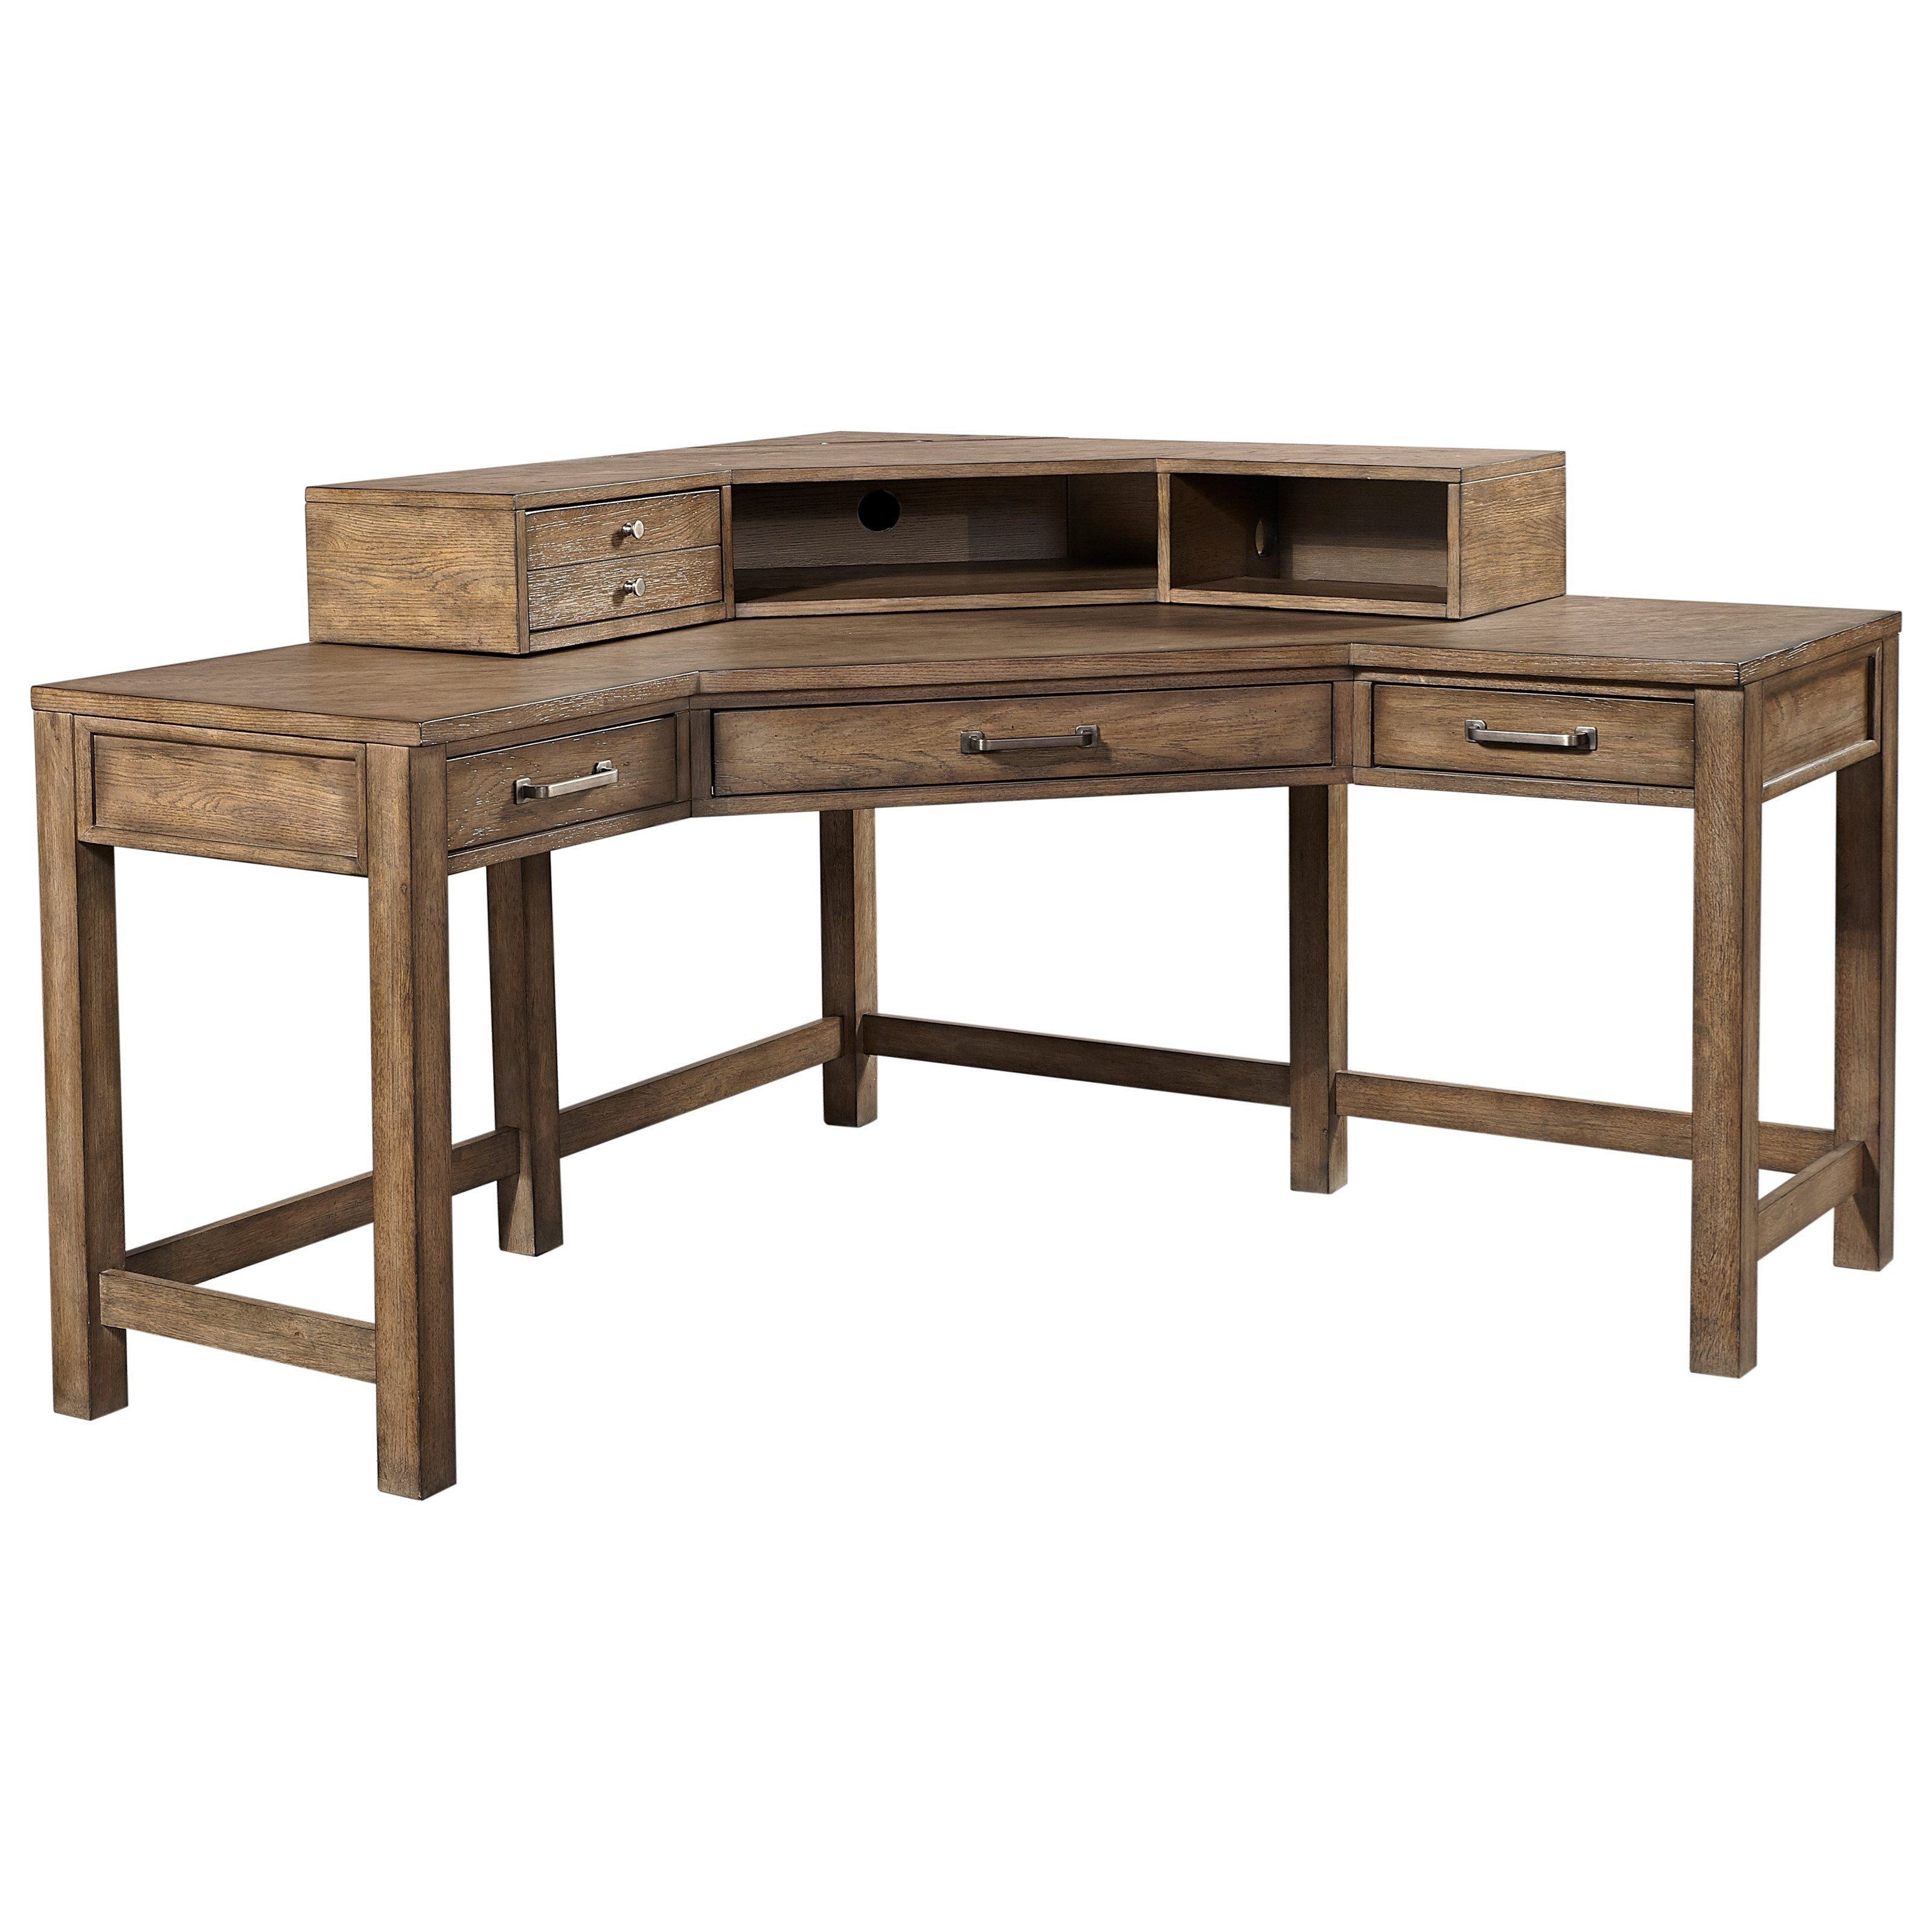 Aspenhome Terrace Point Casual Corner Desk And Hutch With Outlets And Usb Port Fisher Home Furnishings Table Desks Writing Desks